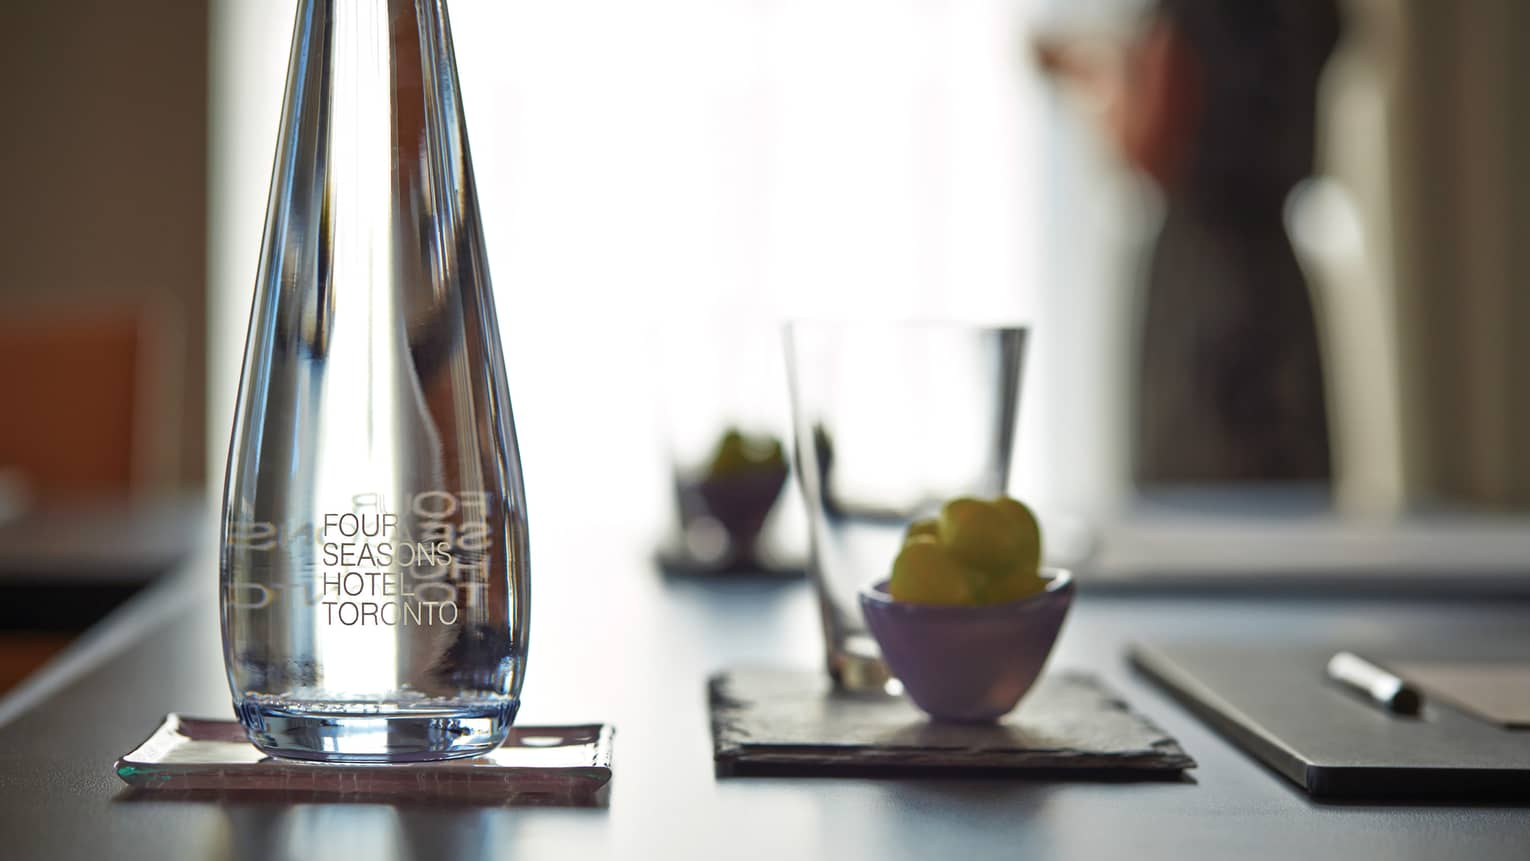 Close-up of glass water bottle, cup and agenda on meeting table